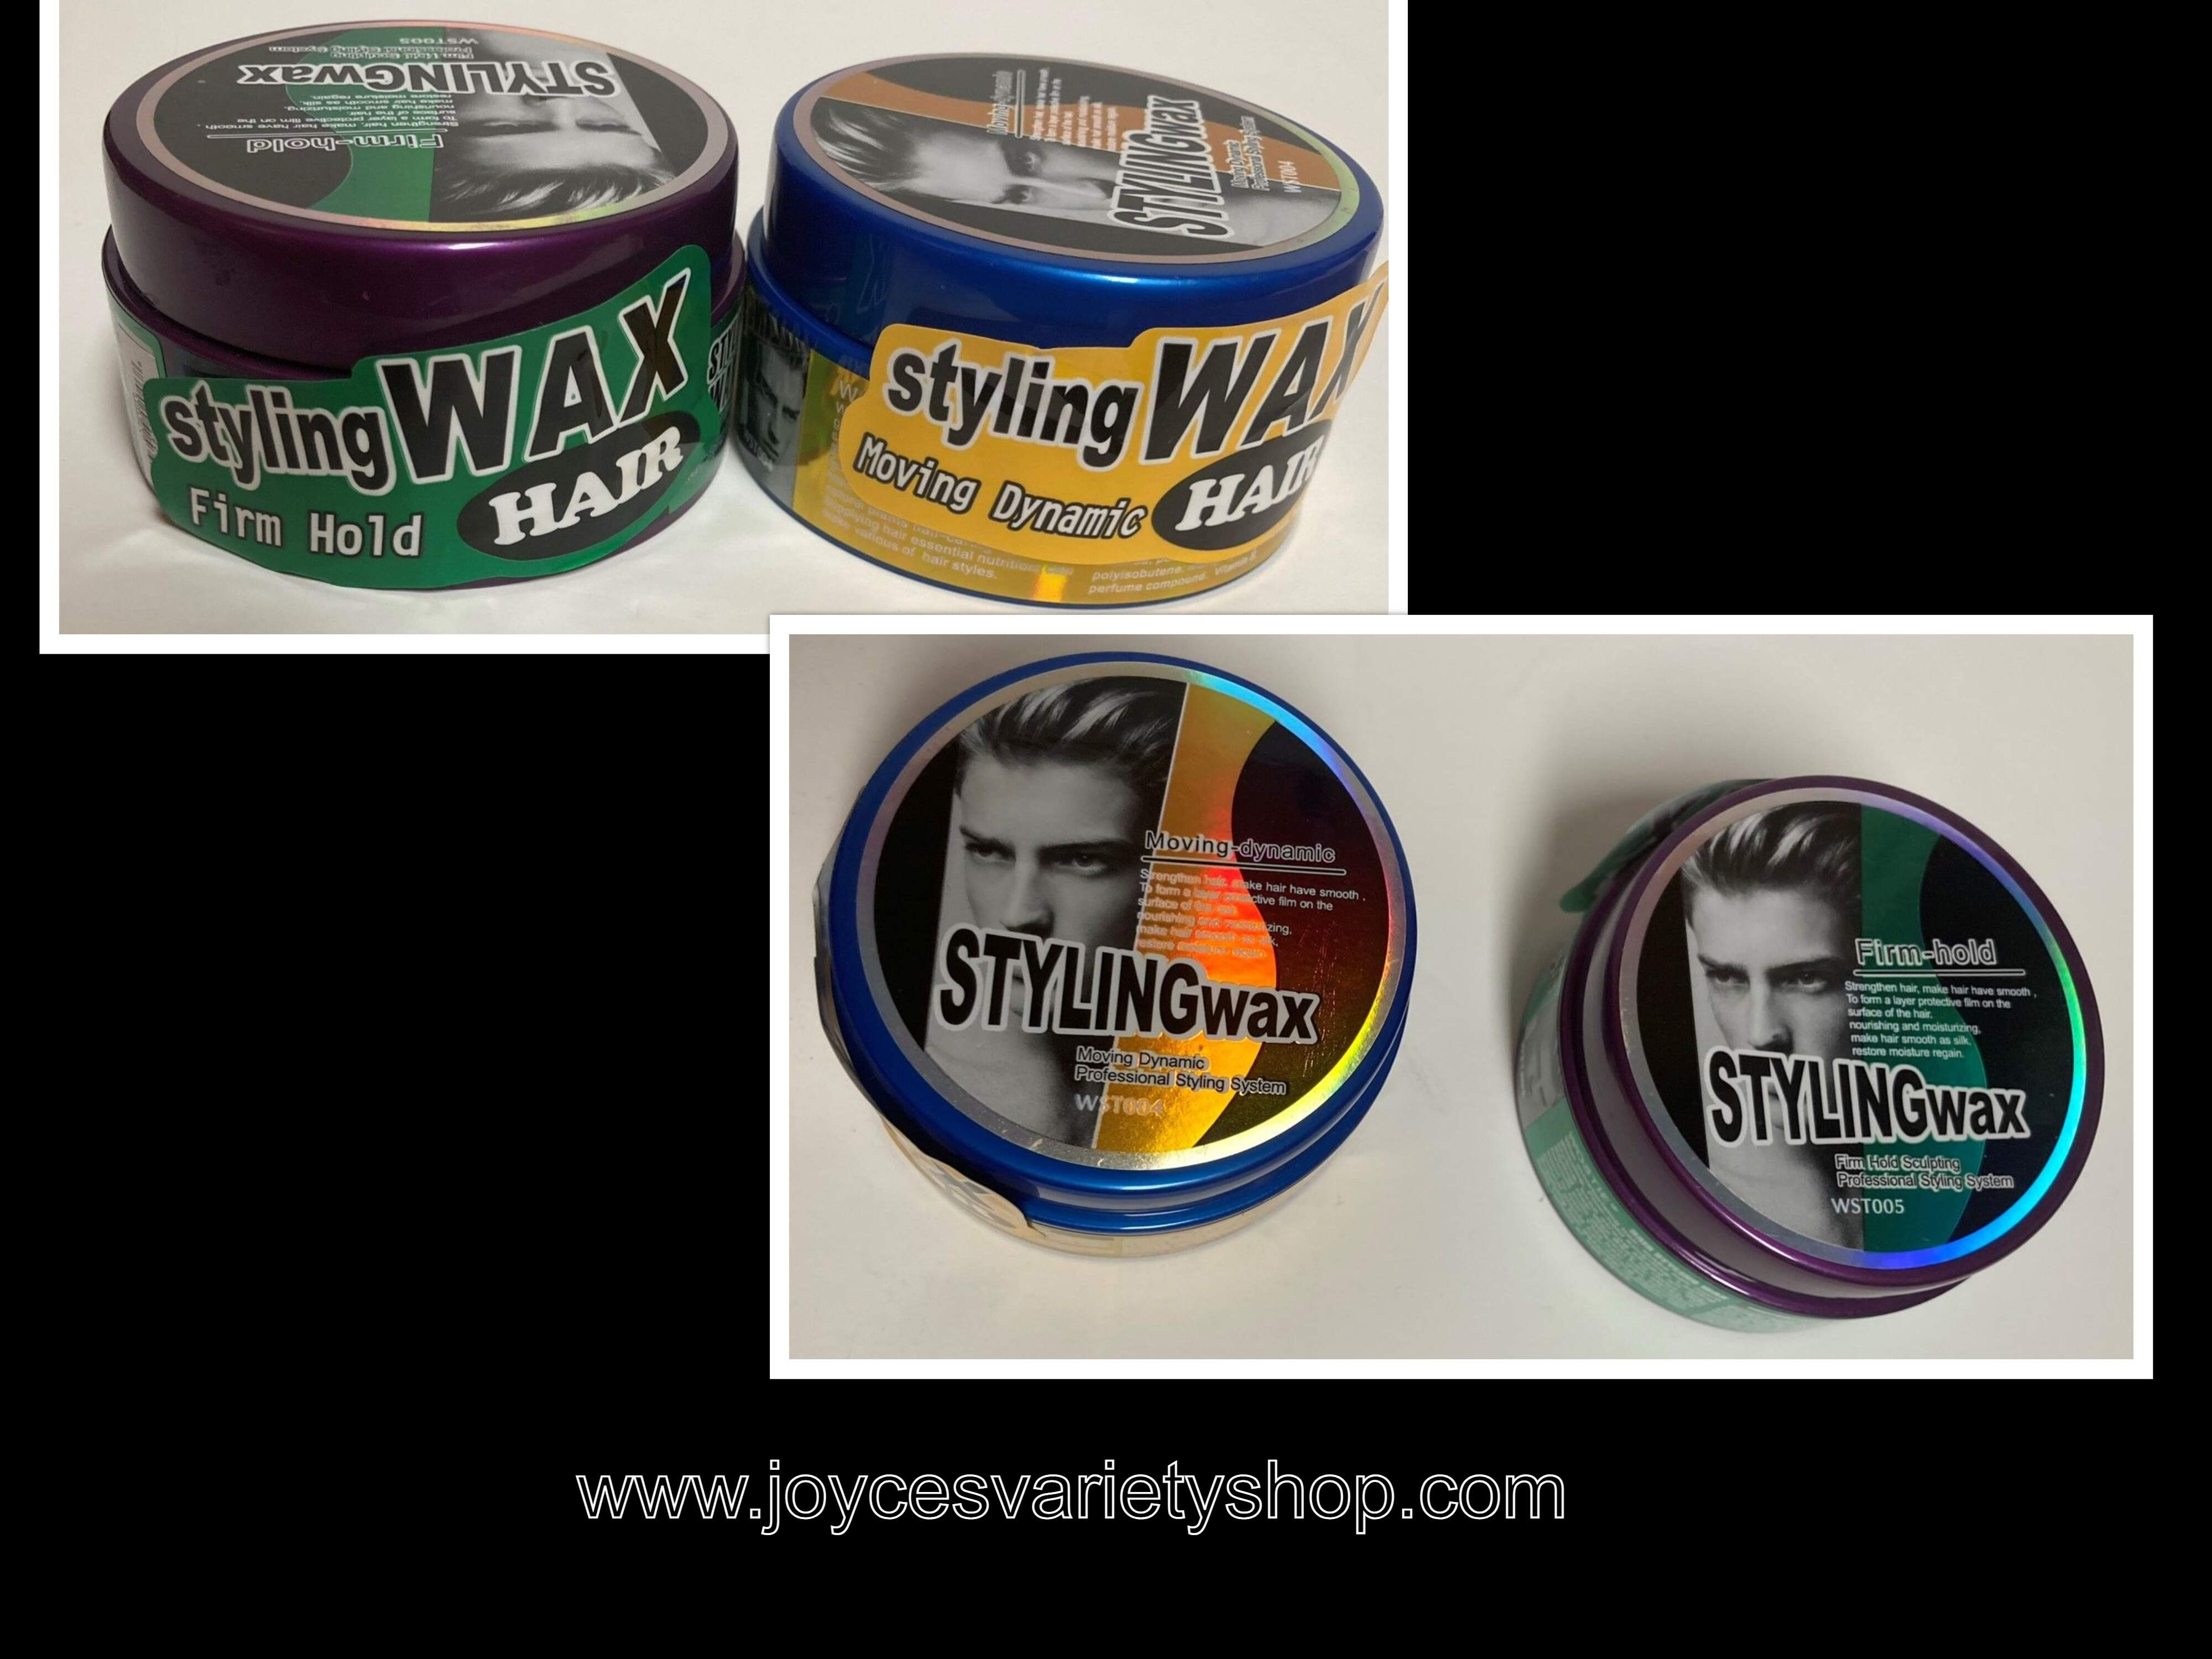 Hair & Beard Hair Styling Wax 3.5 Oz. Tin Choice Moving Dynamic or Firm Hold